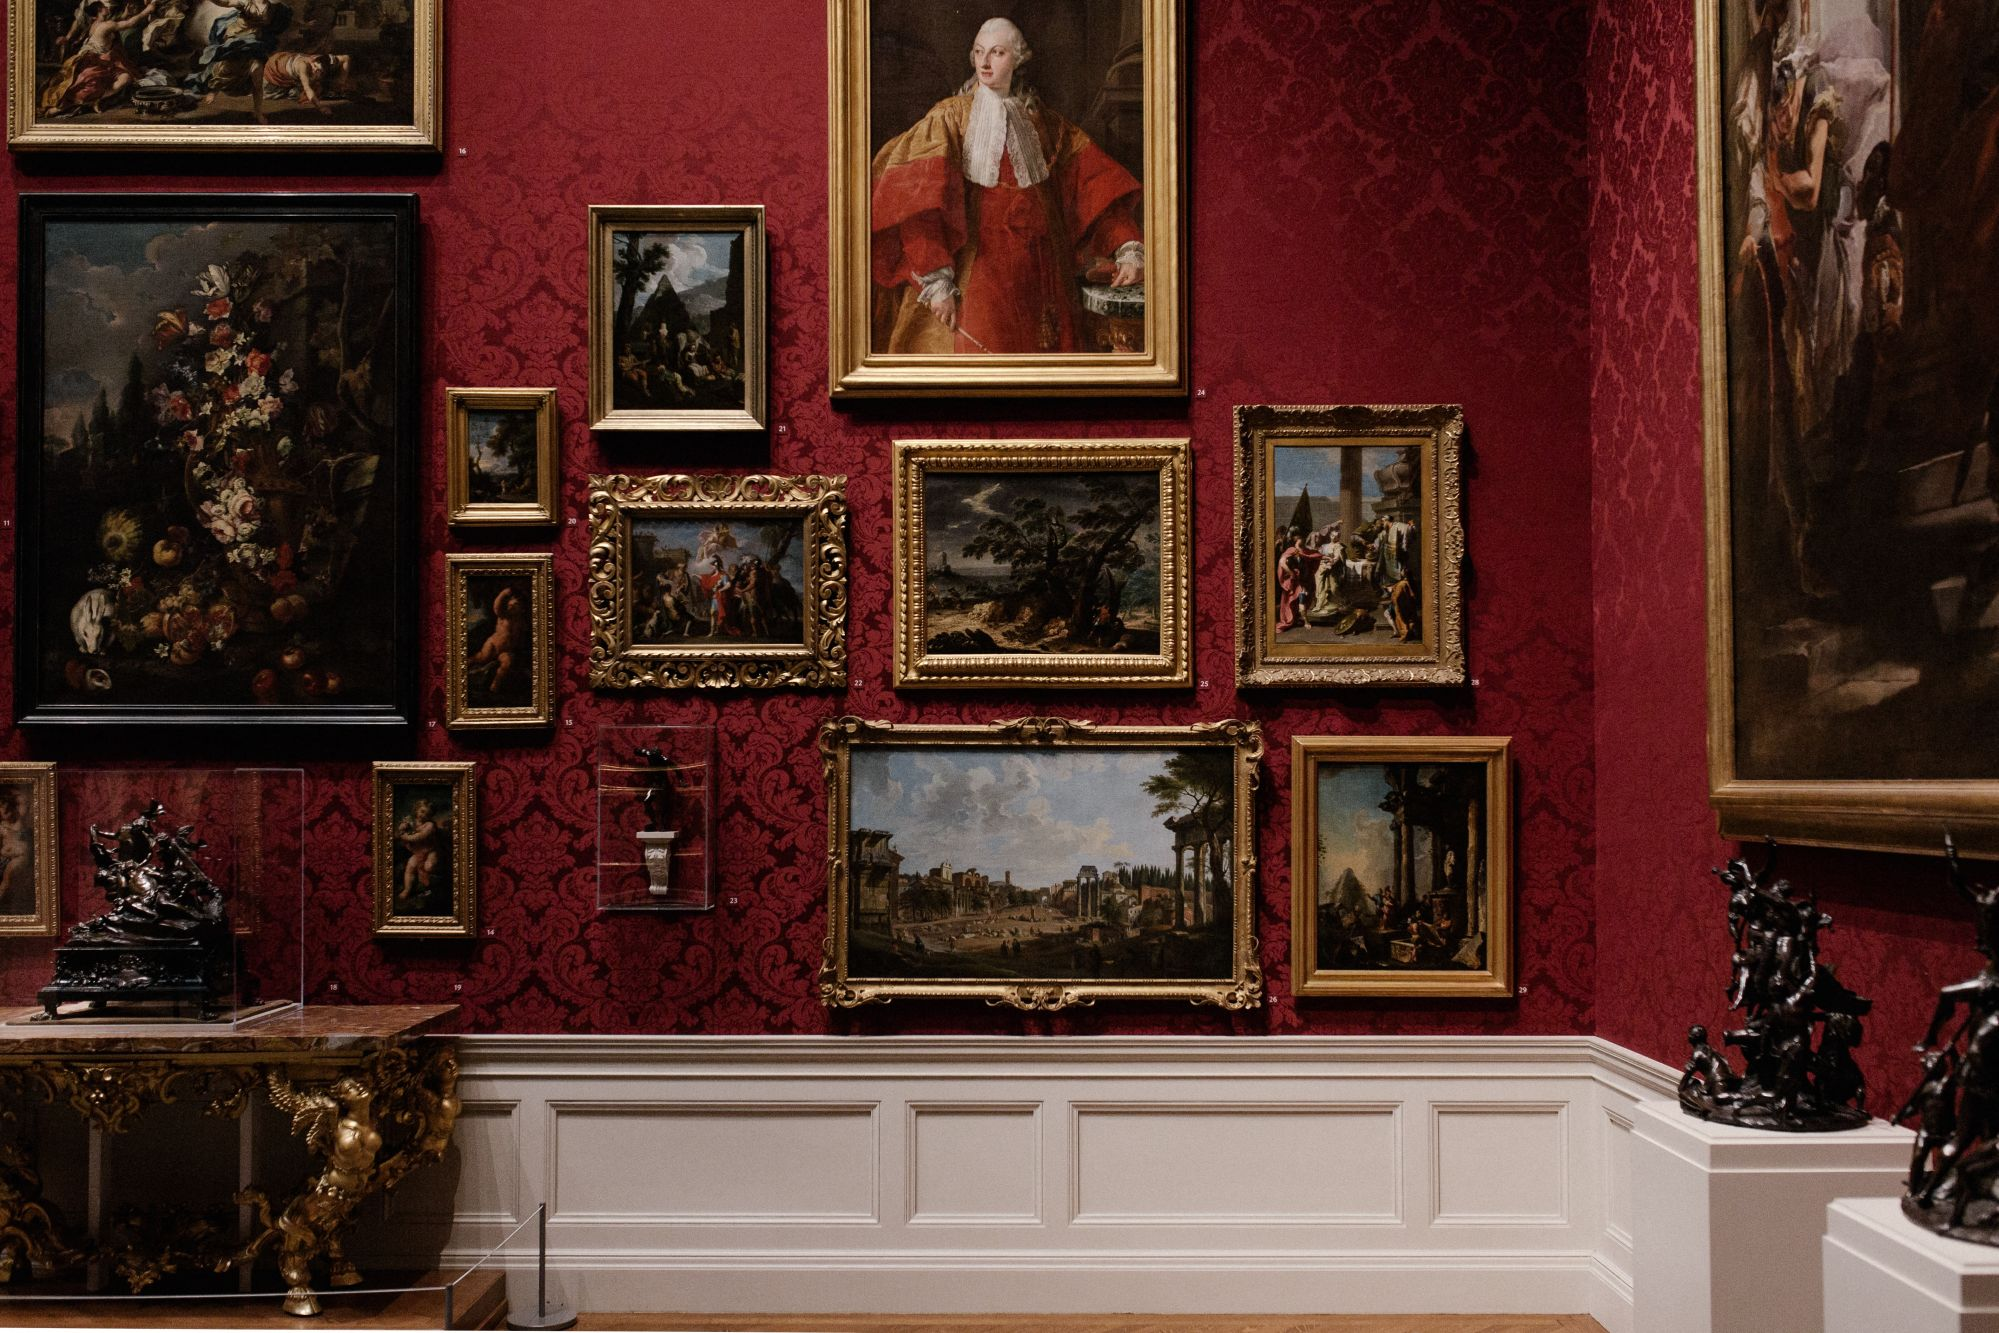 10 Museums We Recommend You Visit (Using Virtual Reality)